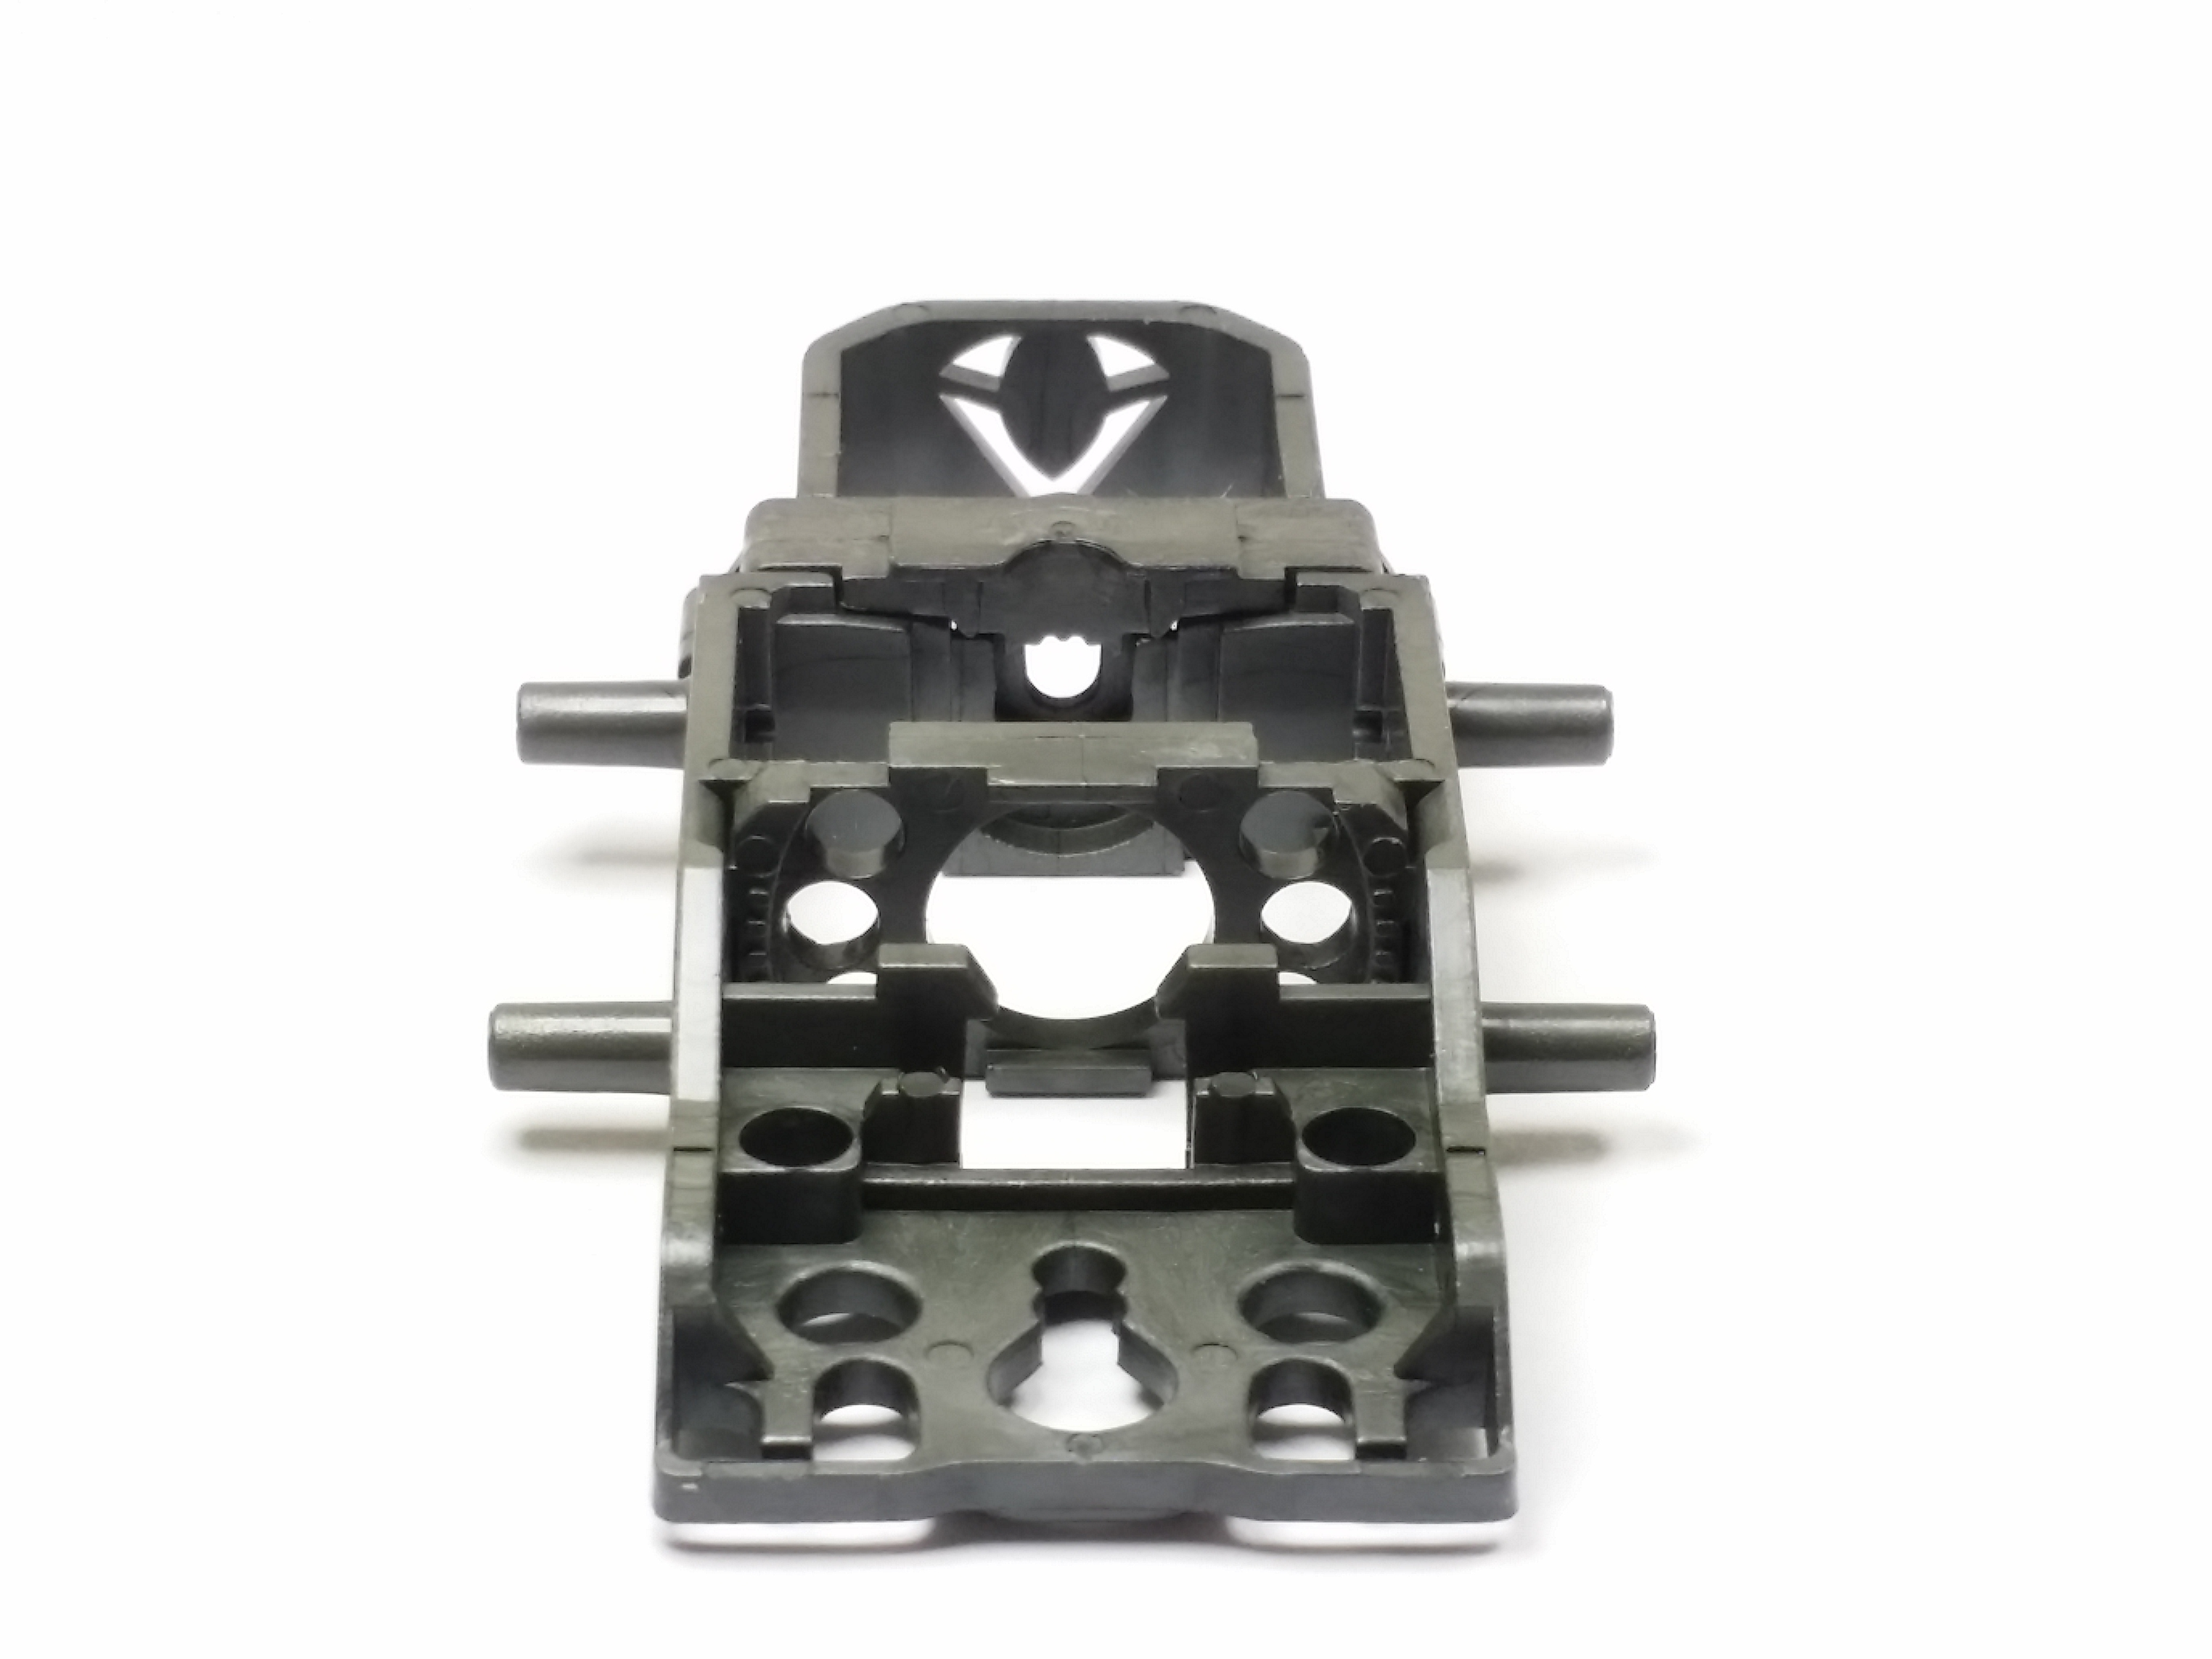 V1 Medium Chassis, Magnet Clip, Timing Bracket